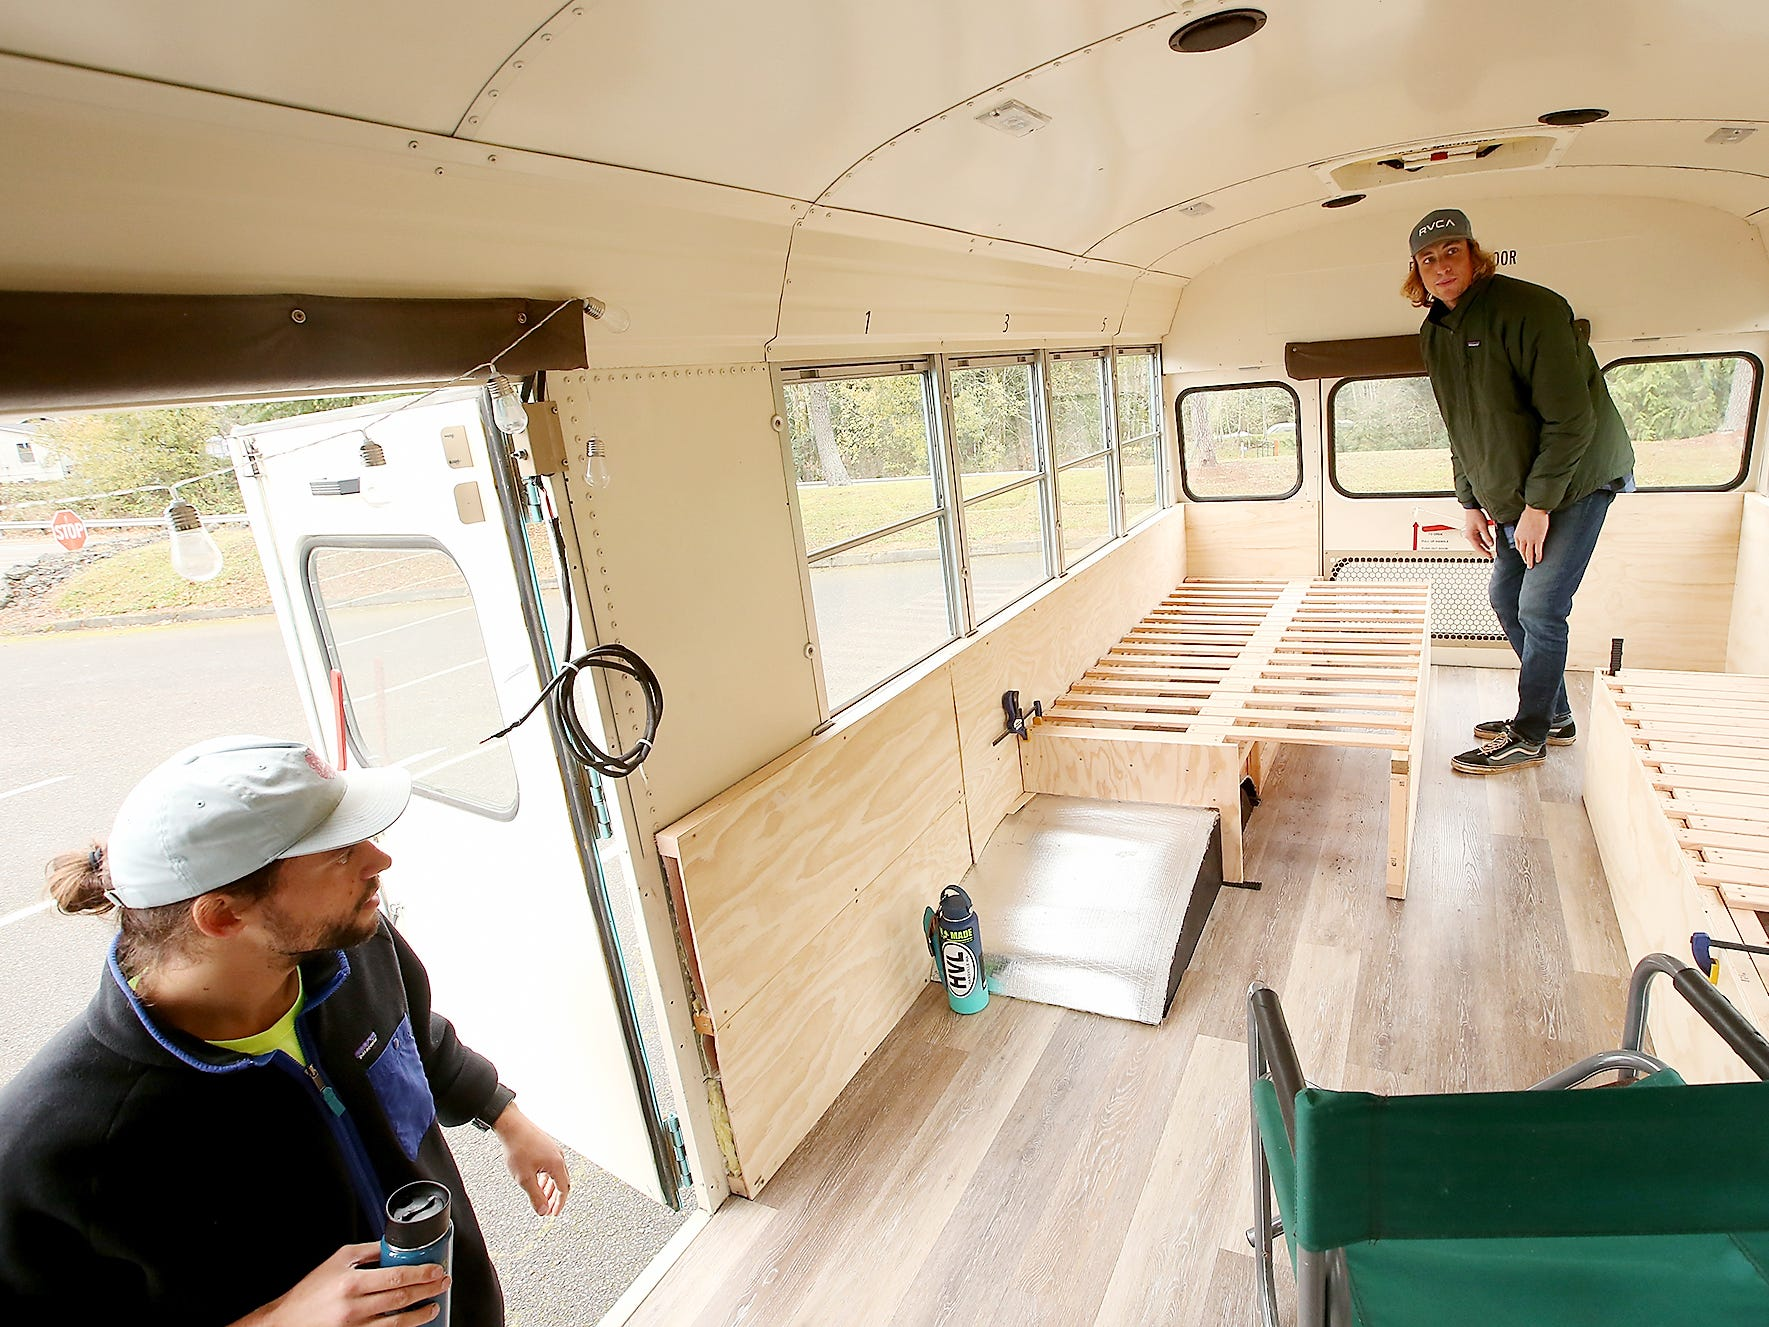 Hans Schippers extends a custom bed frame that he and Nick (at left) are building and installing during a tour of the bus they are renovating to travel down the coast in while teaching students about the ways they can reduce their use of plastics and live more sustainable lives. In partnership with Sustainable Coastlines Hawaii, the brothers hope to reach 10,000 students during the trip.